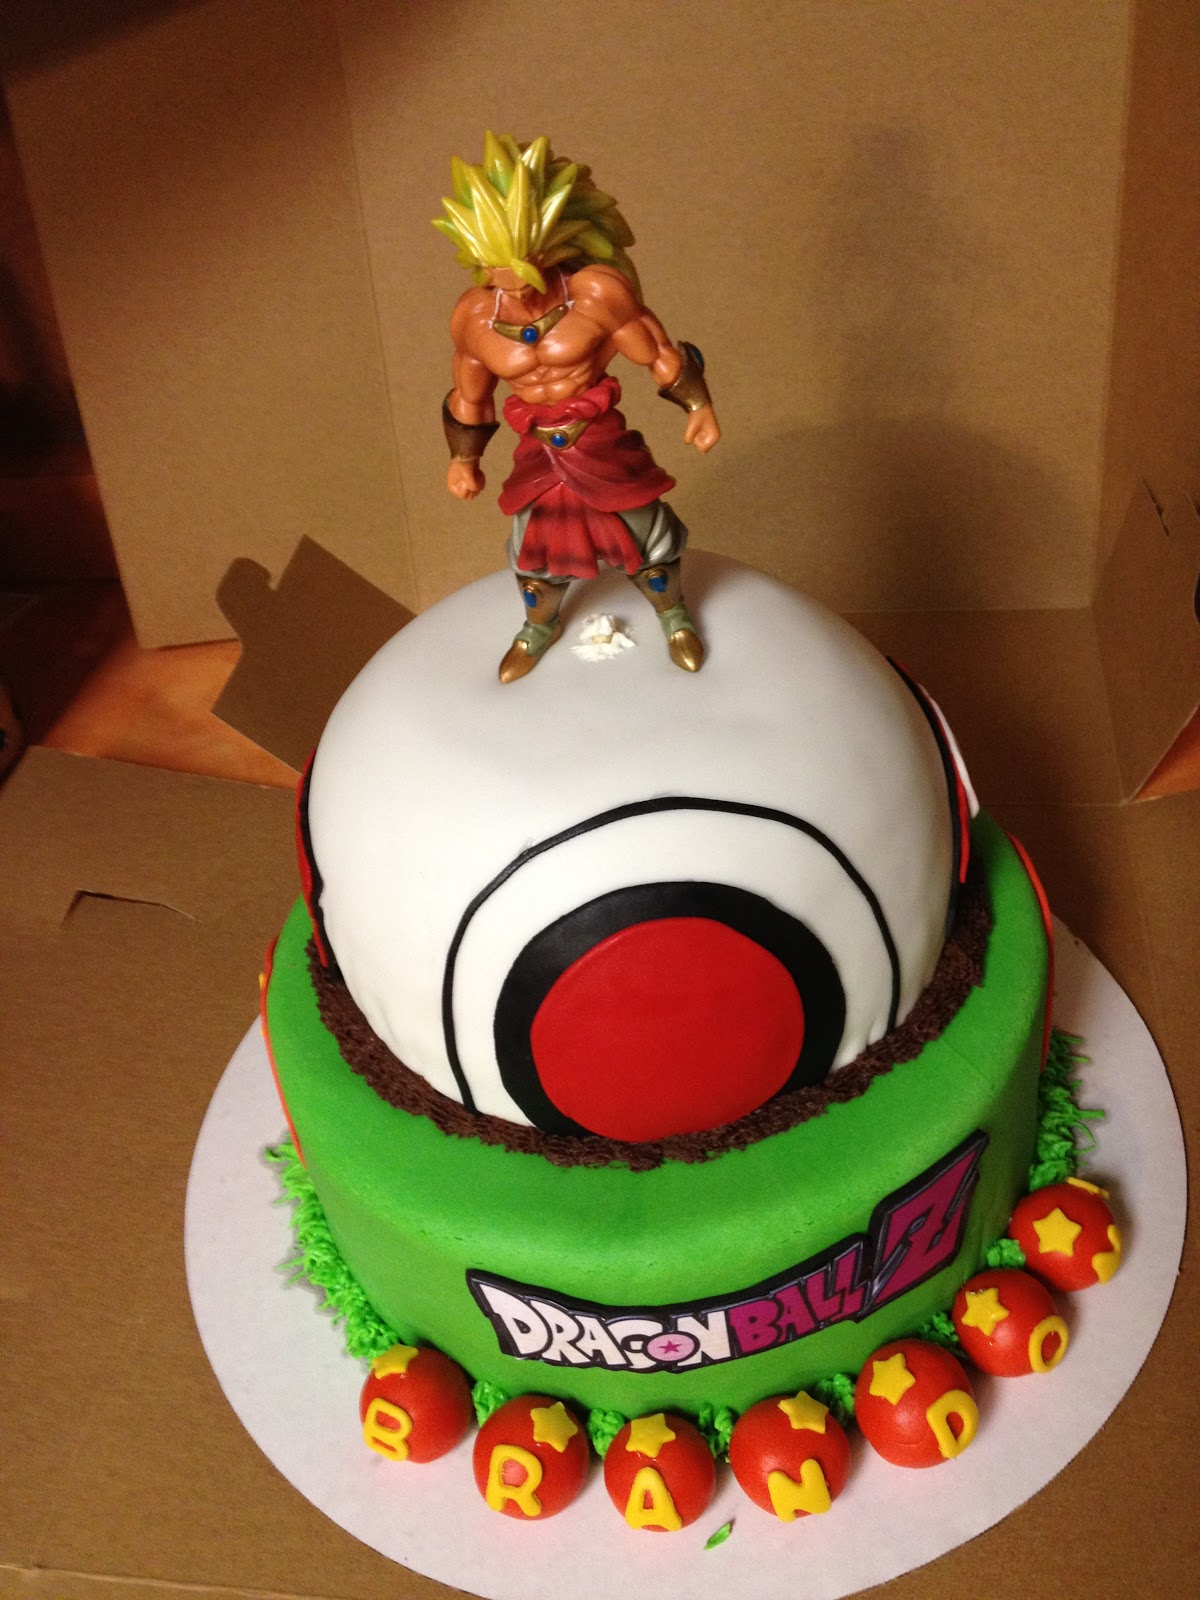 Cake Arch Balloon Design : Love to Bake!: Drazon Ball Z Cake